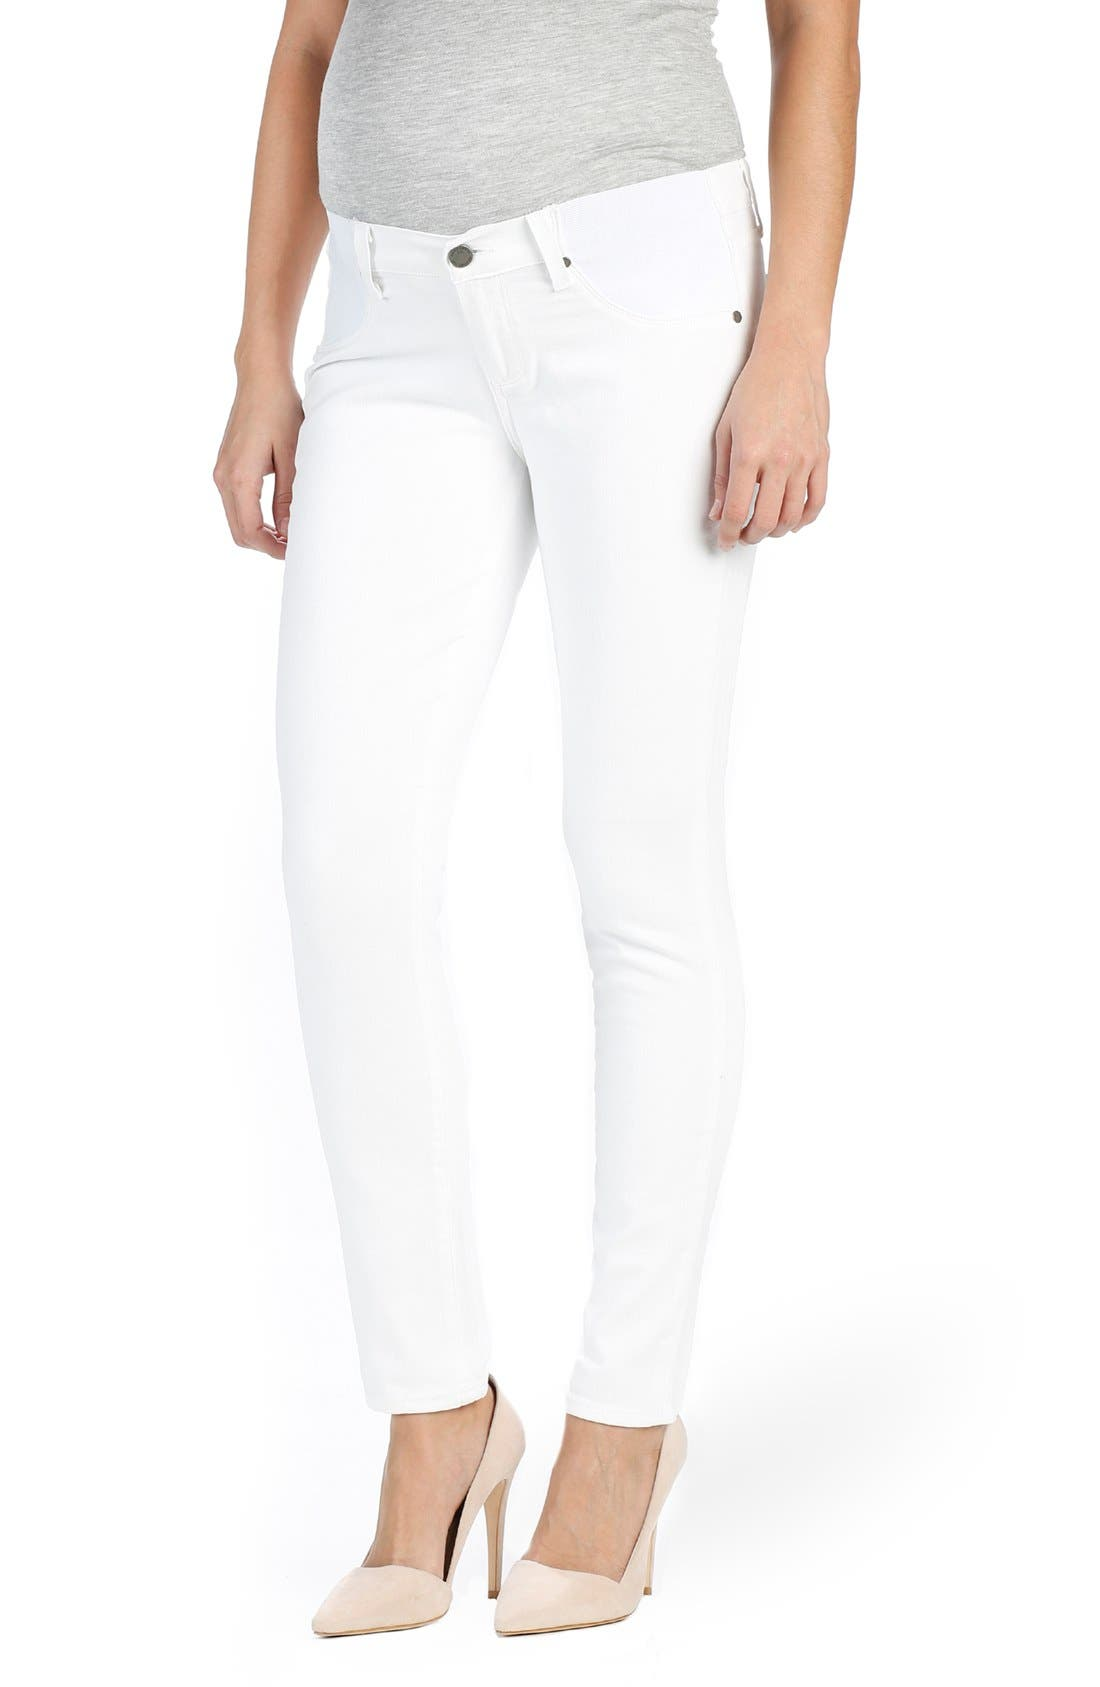 PAIGE,                             'Skyline' Ankle Peg Skinny Maternity Jeans,                             Main thumbnail 1, color,                             101